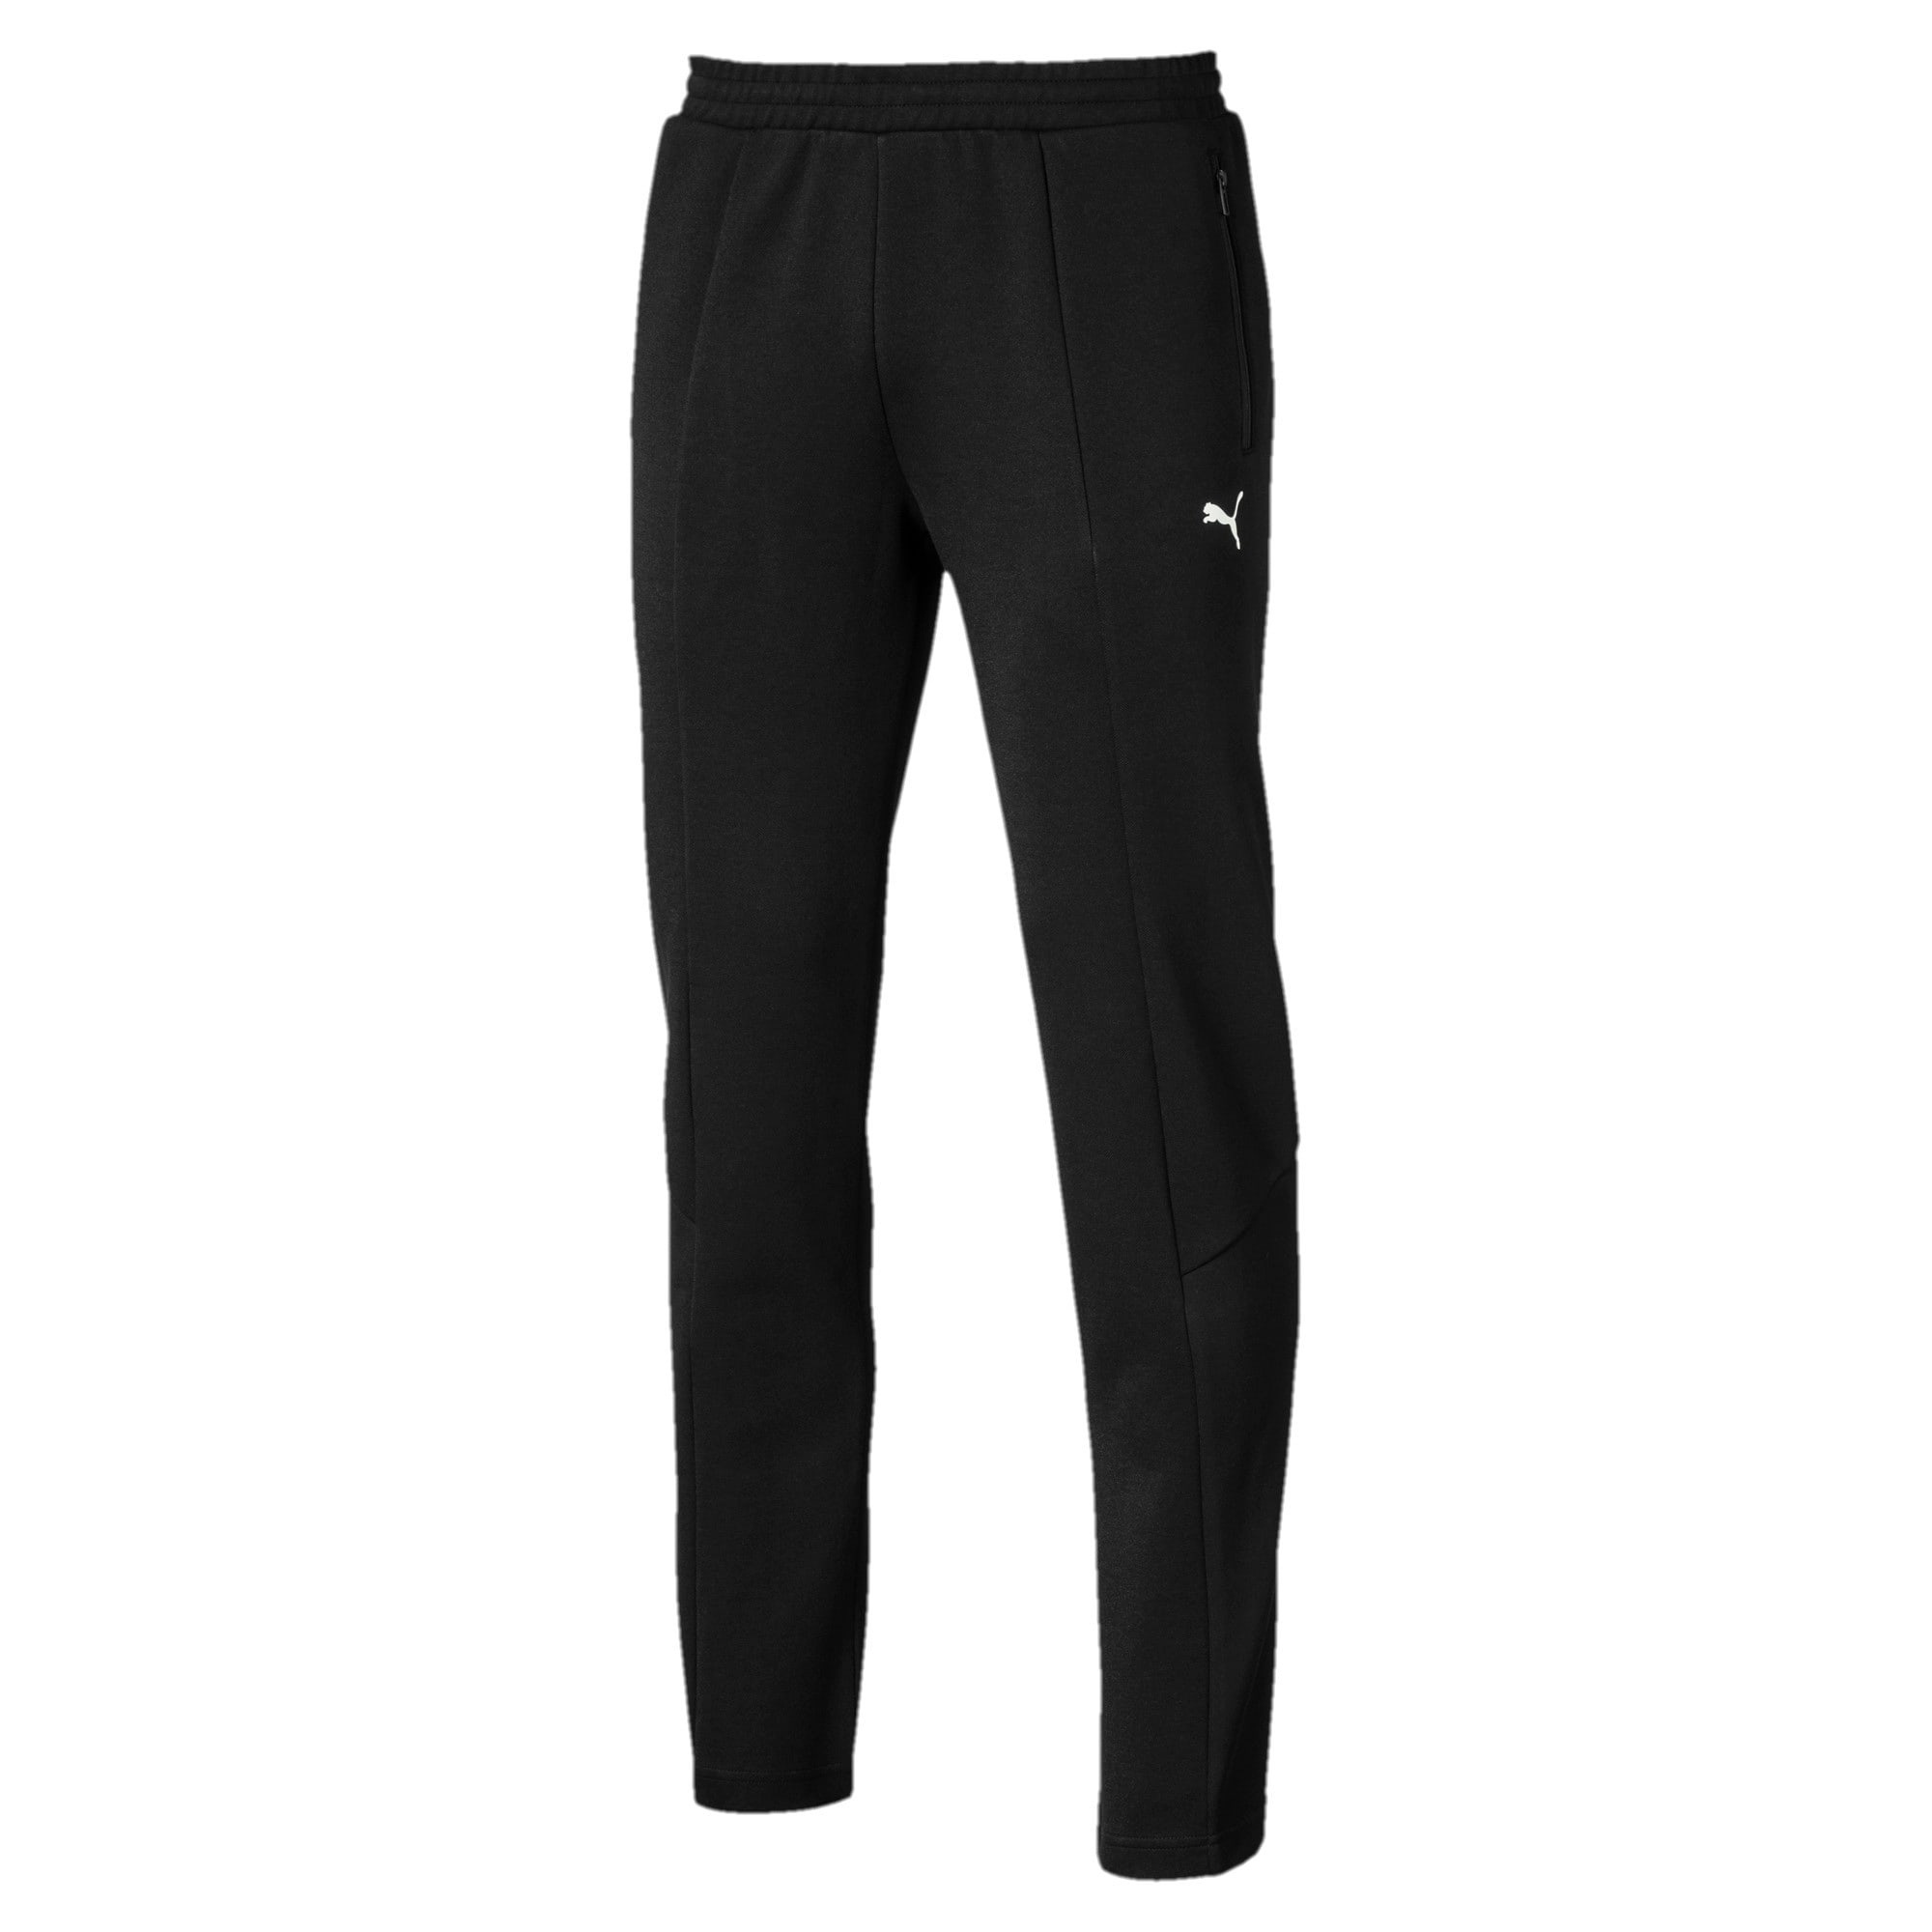 Thumbnail 4 of Ferrari Slim Men's Sweatpants, Puma Black, medium